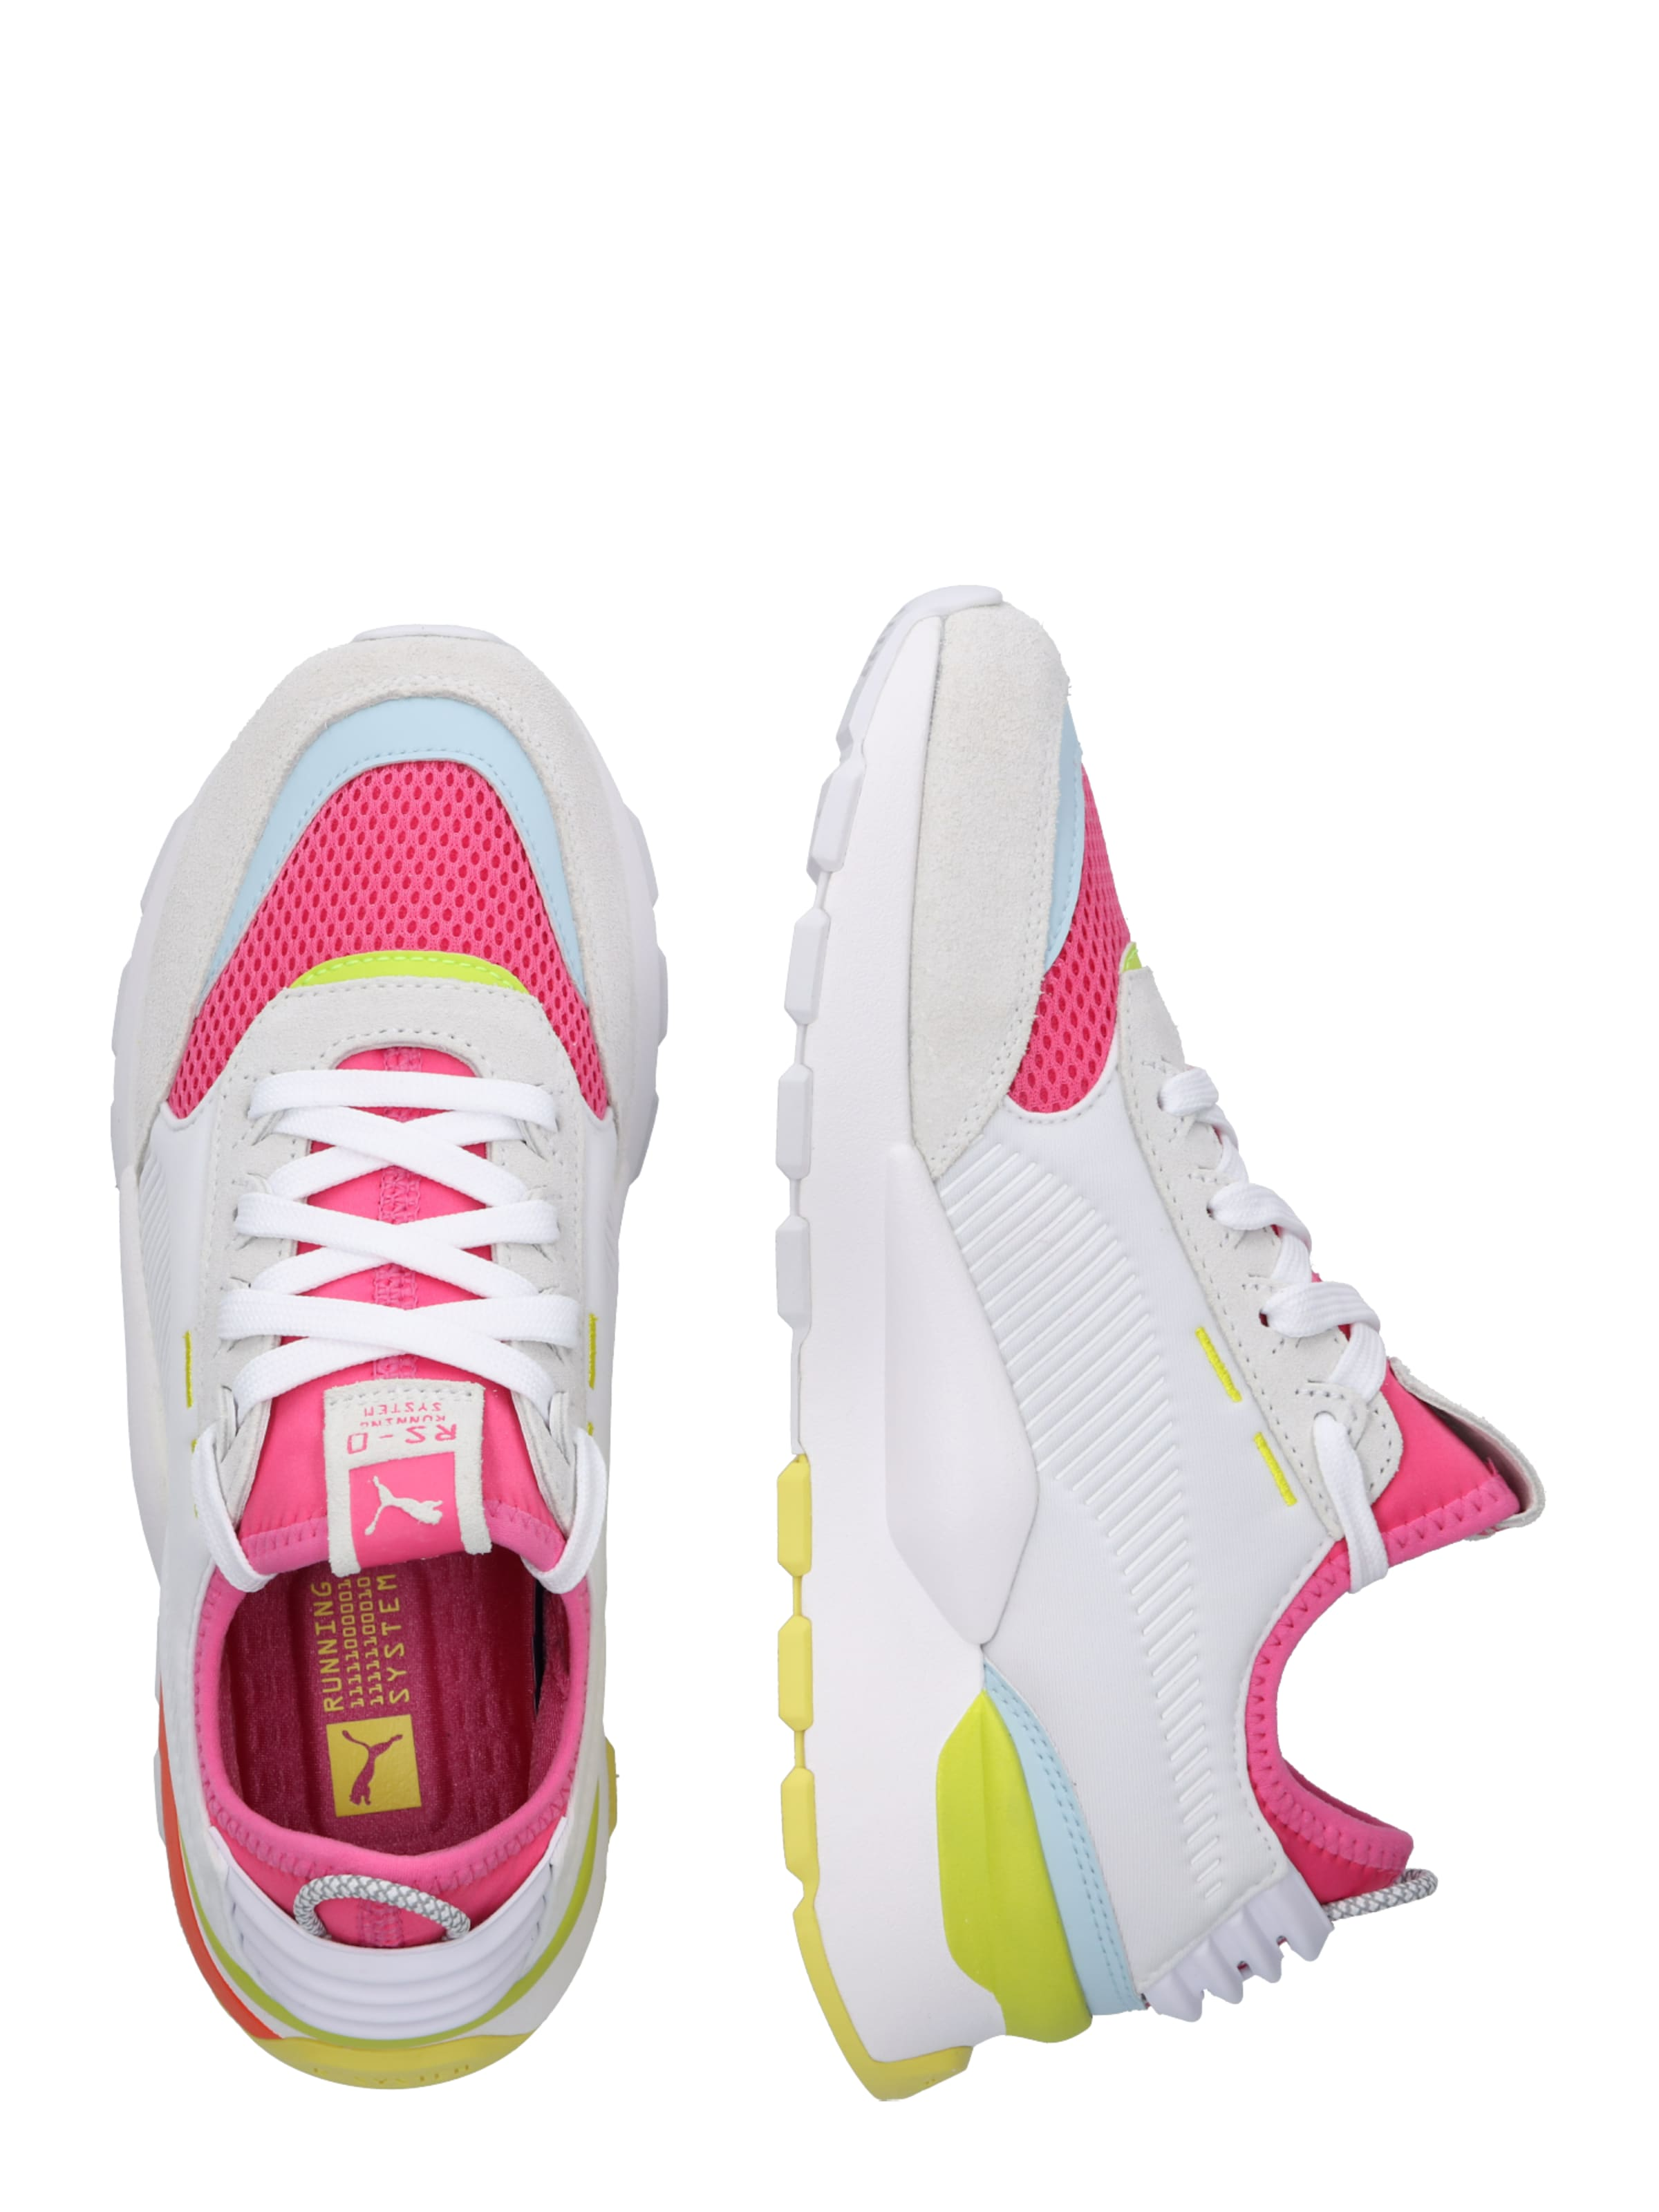 En Basses 'rs Winter Inj Baskets Puma 0 RoseBlanc Toys' QrdthxsC